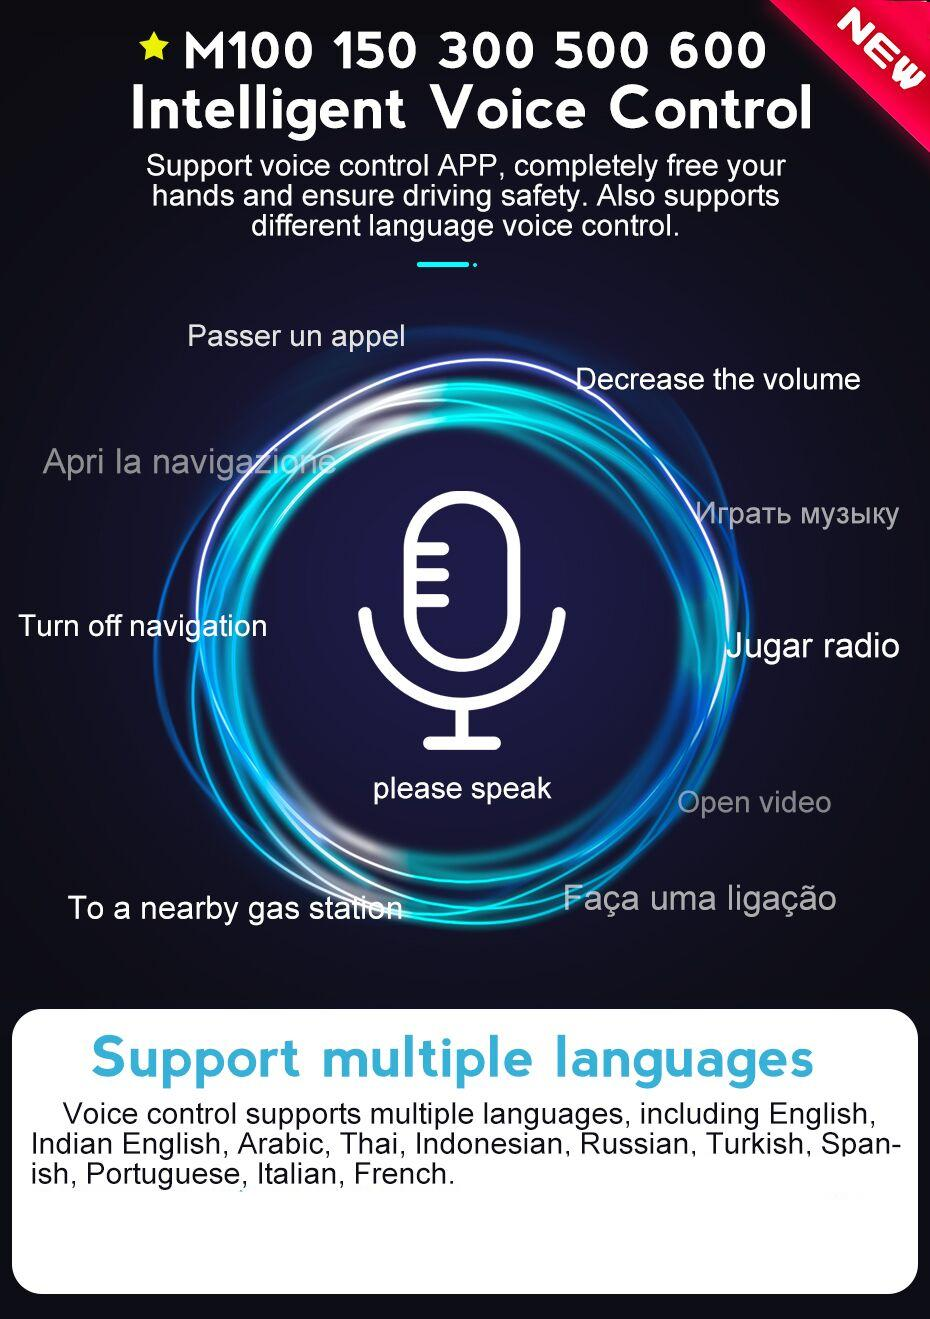 Ai Voice control,completely free your hands and ensure driving safety,also supports dfiiferent language voice control